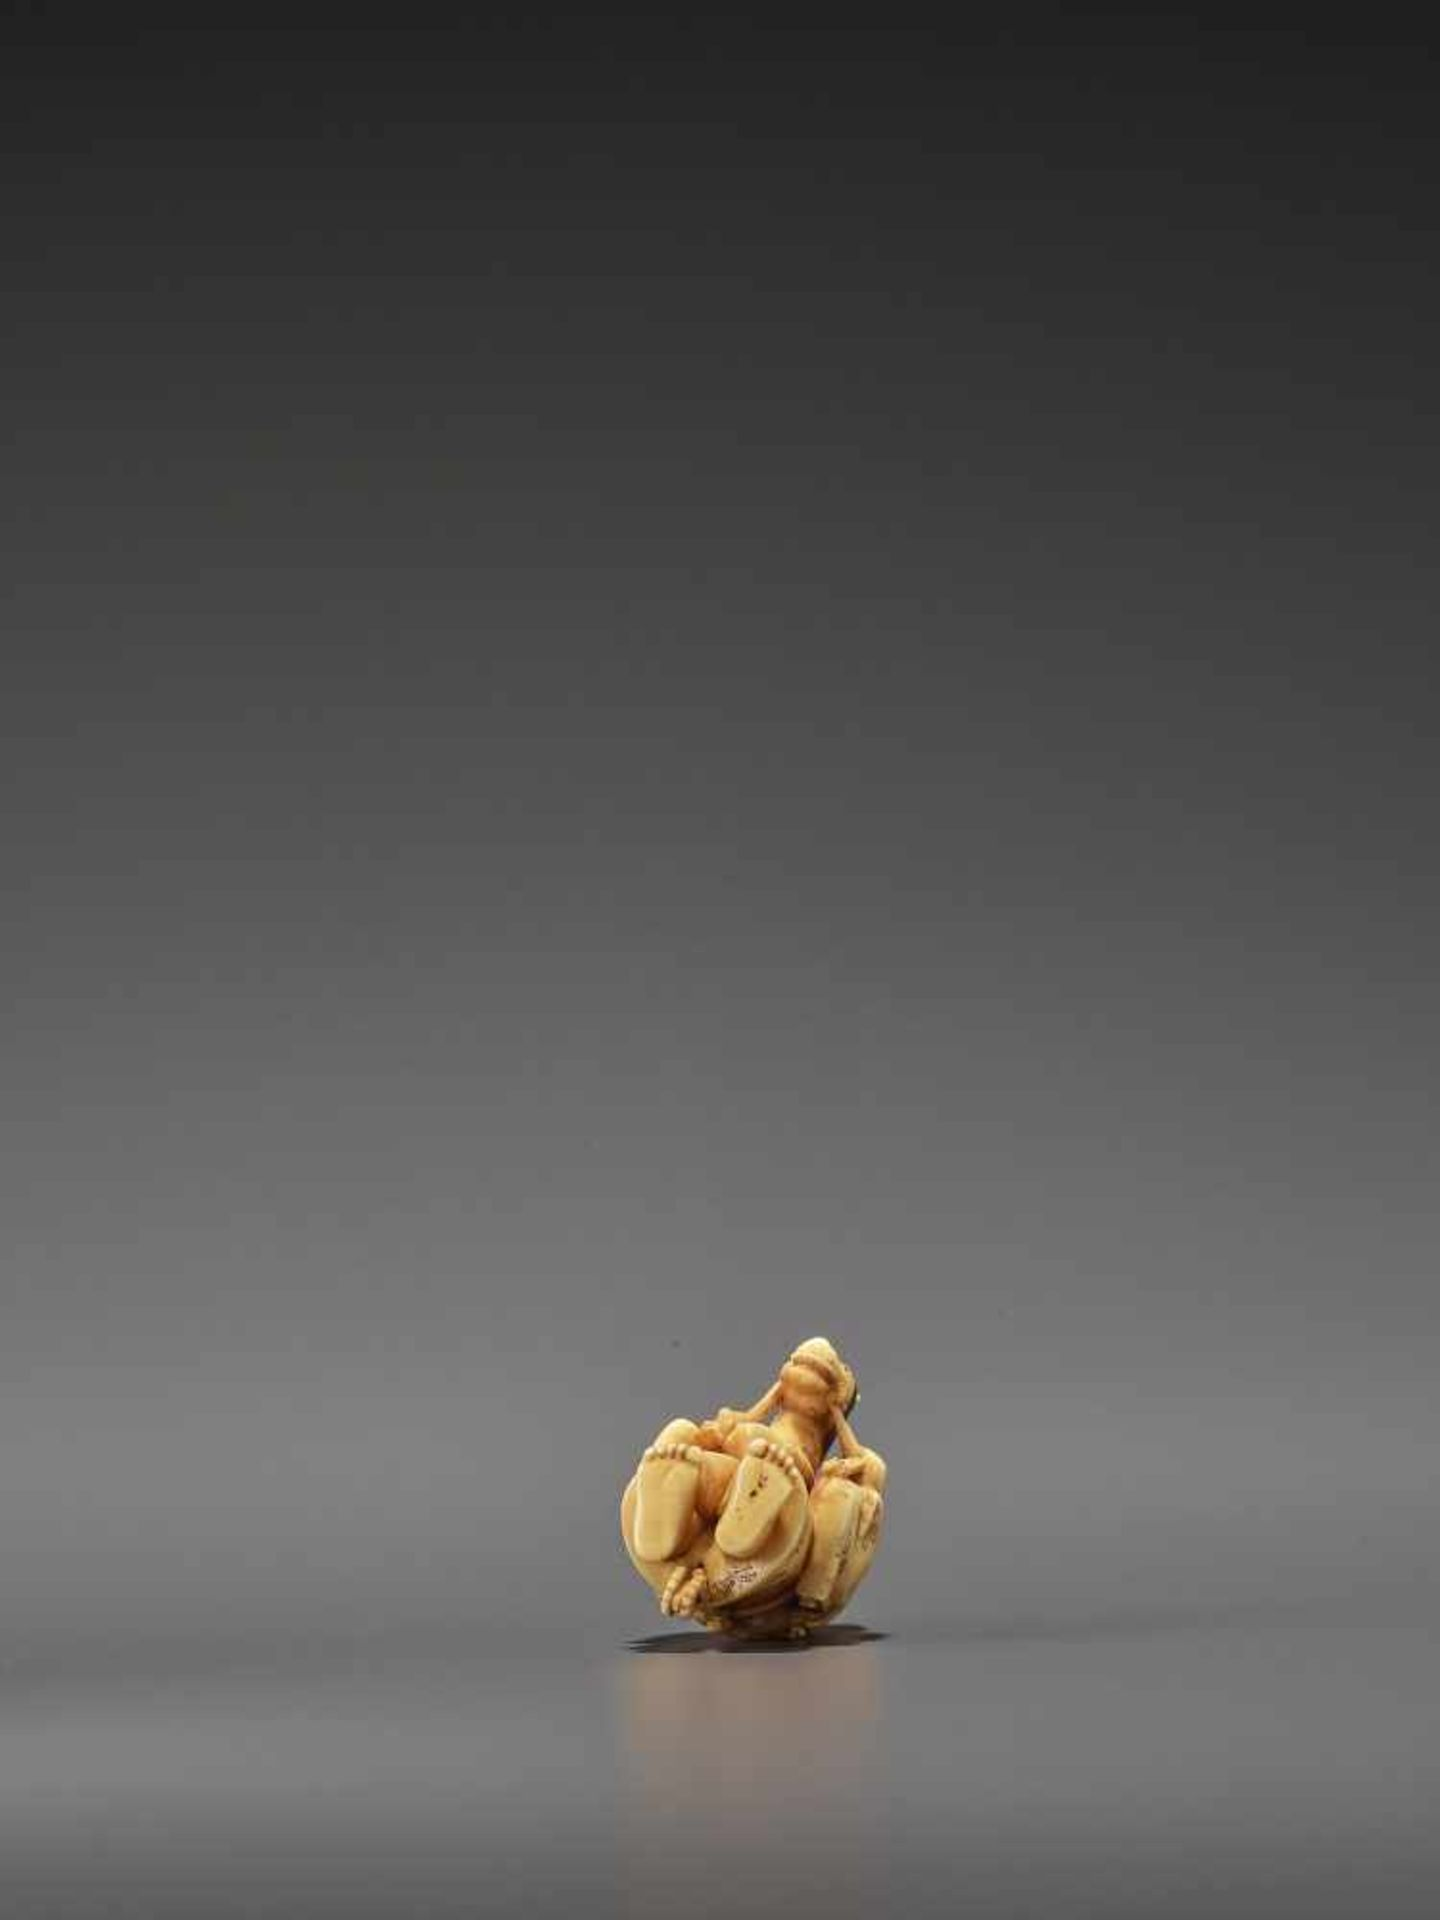 RYOMIN: A VERY FINE IVORY NETSUKE OF A BOY WITH HOBBY HORSE By Ono Ryomin, signed Ryomin with - Image 7 of 11